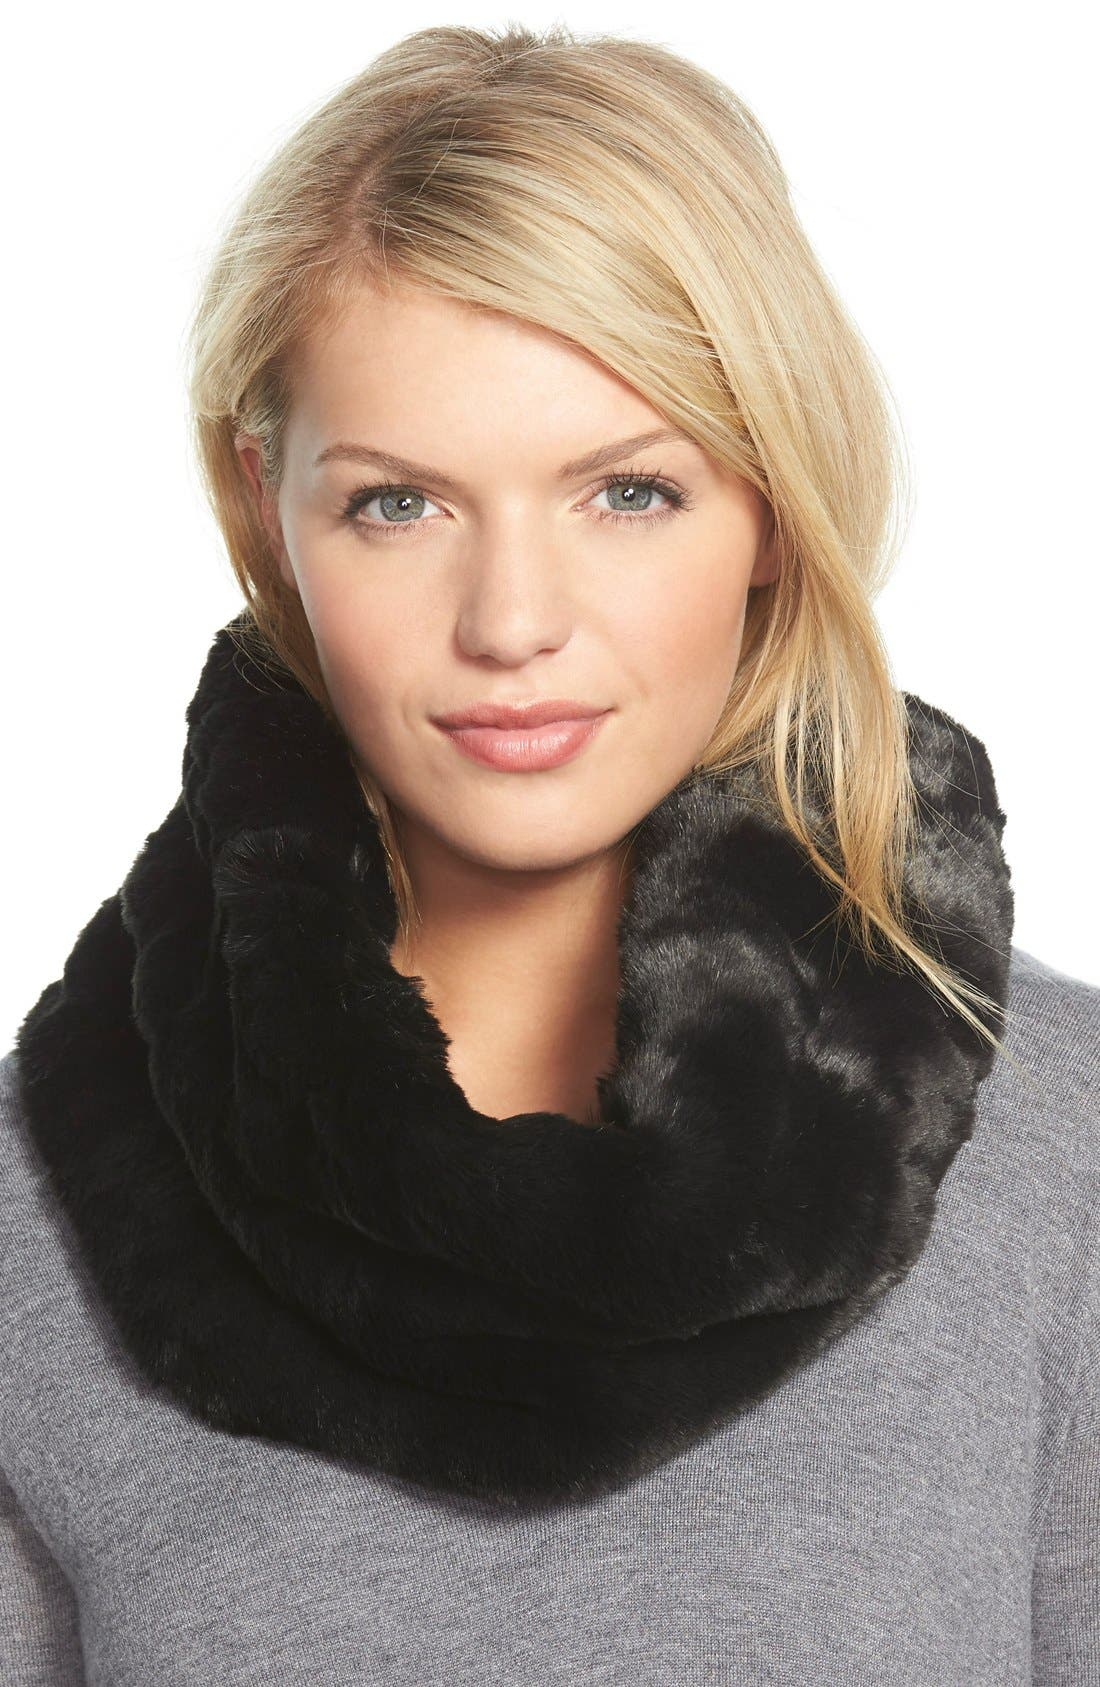 Alternate Image 1 Selected - Badgley Mischka Faux Fur Infinity Scarf